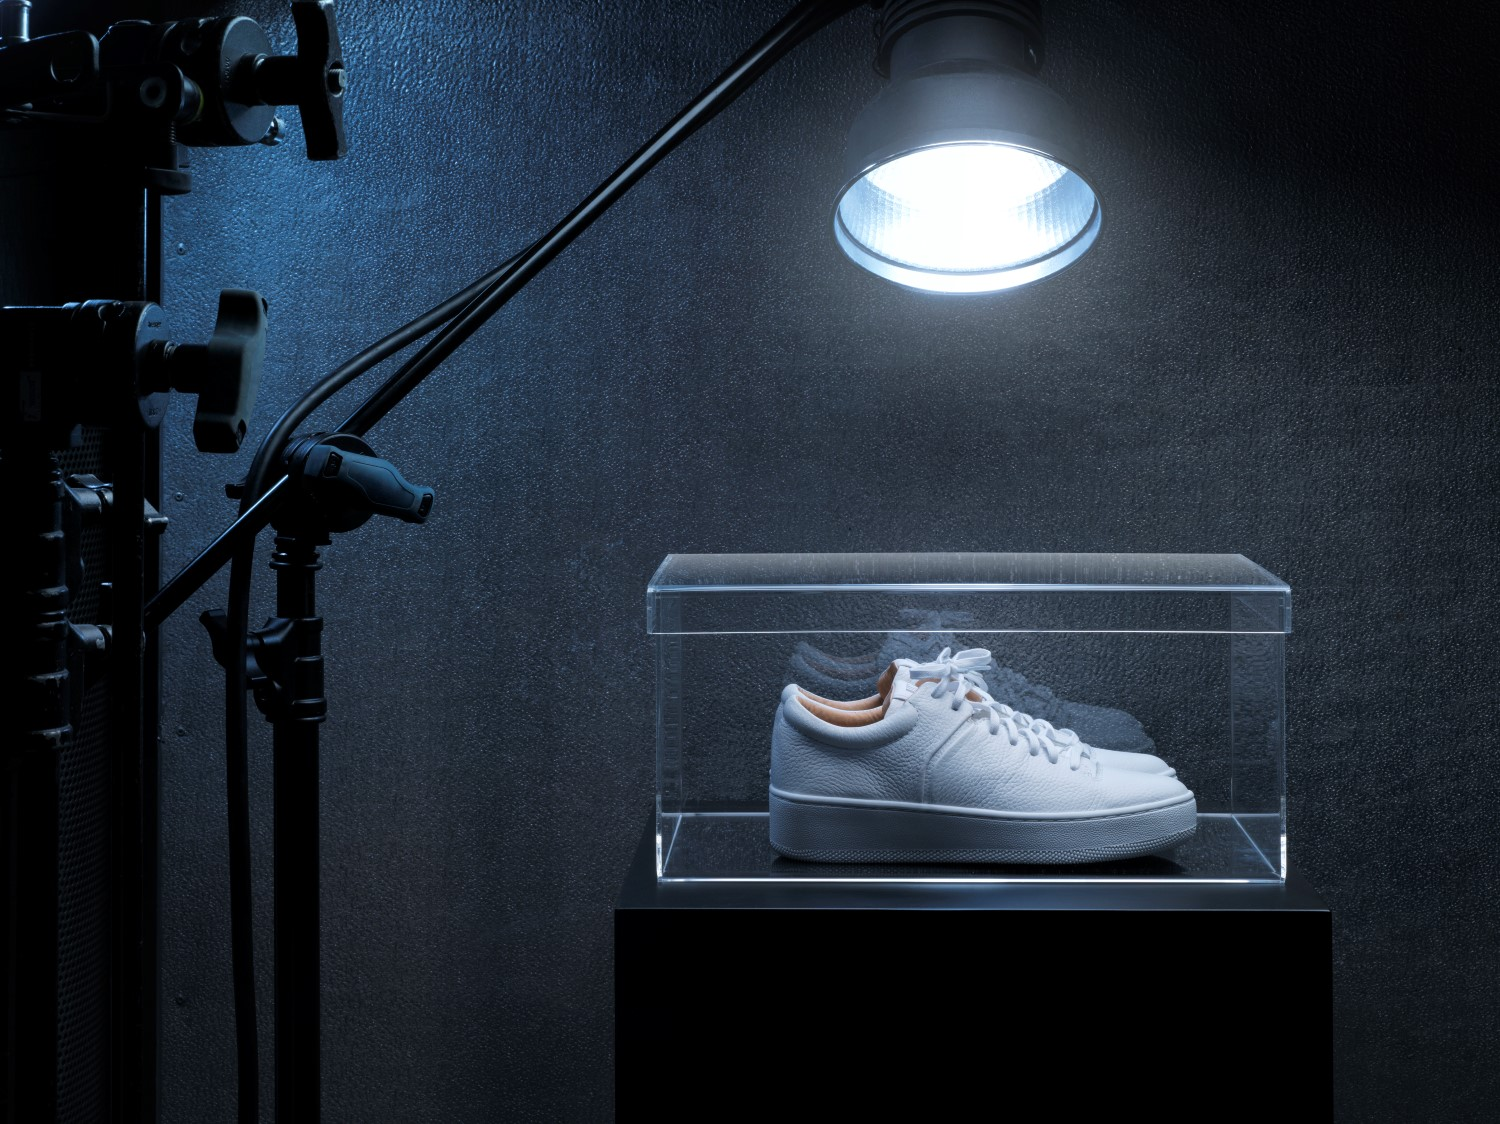 ikea spanst lighting on the sneakers